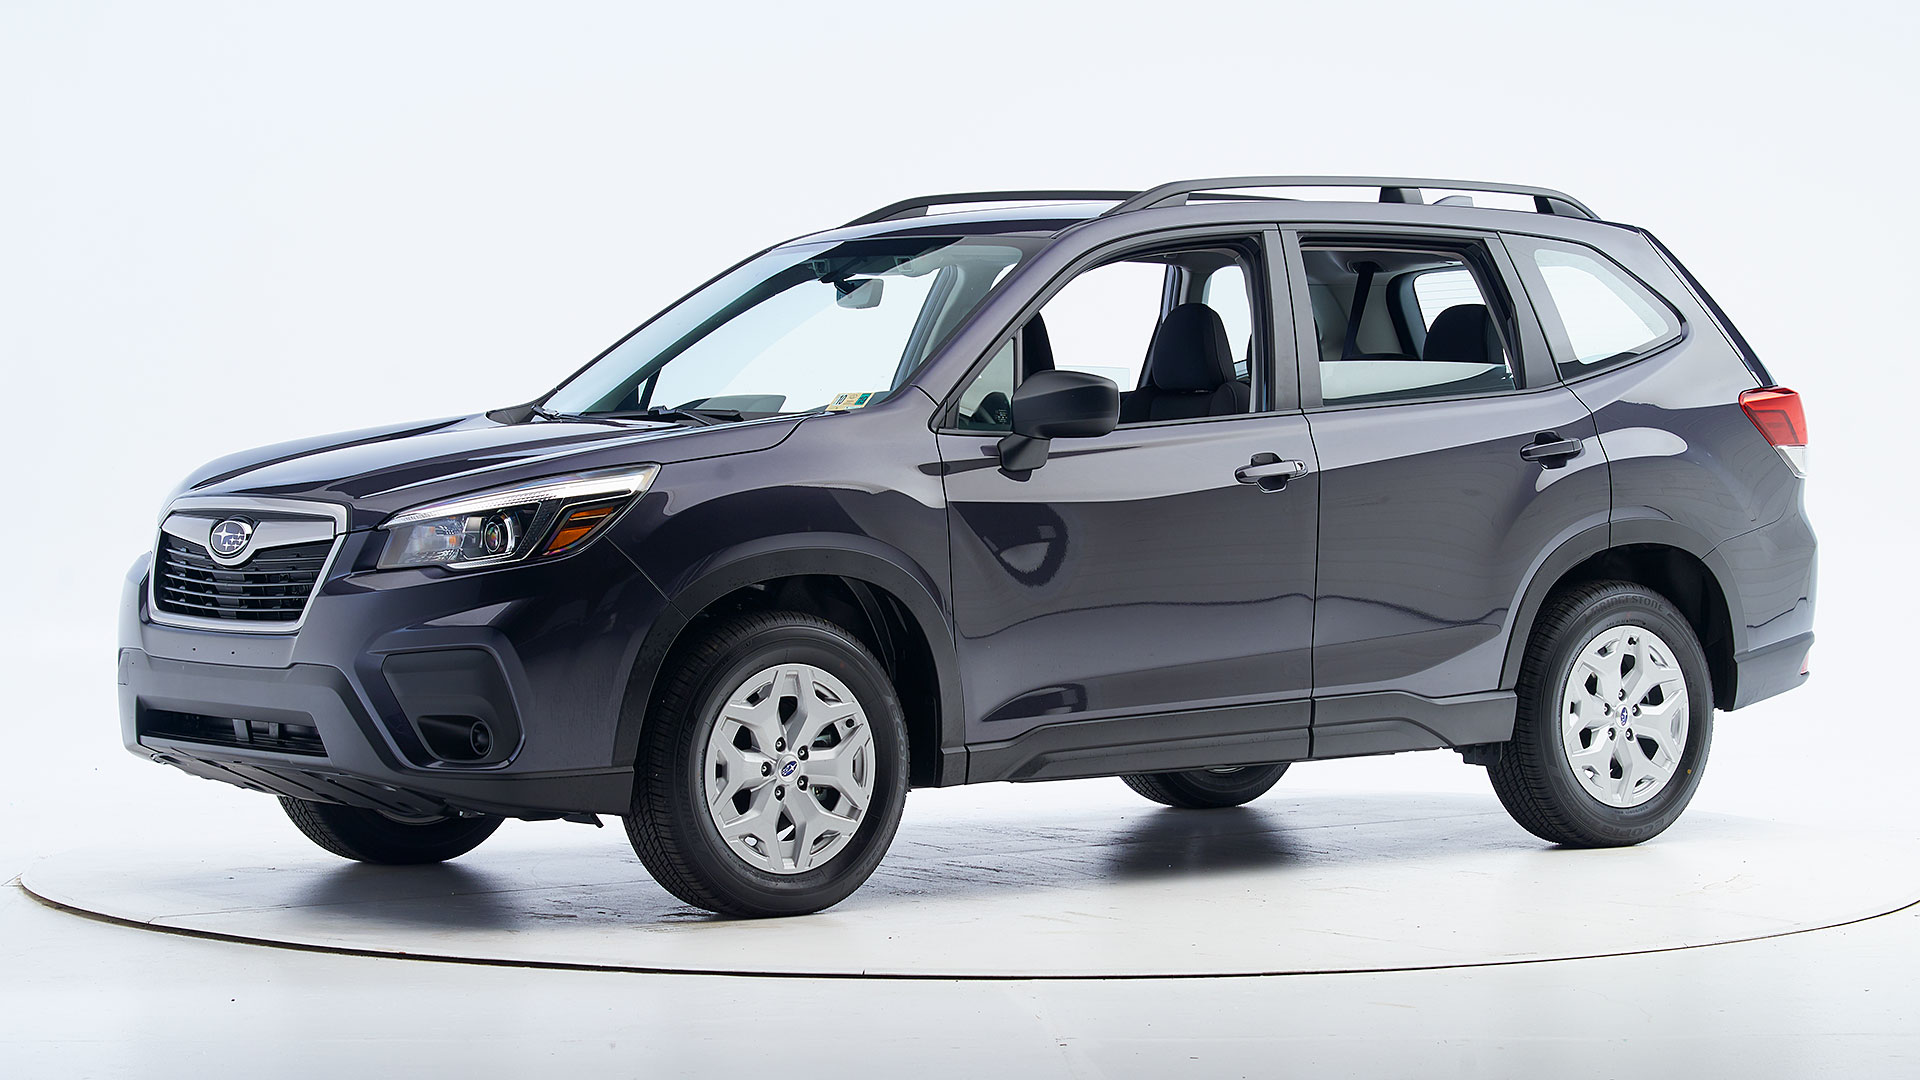 2021 Subaru Forester 4-door SUV